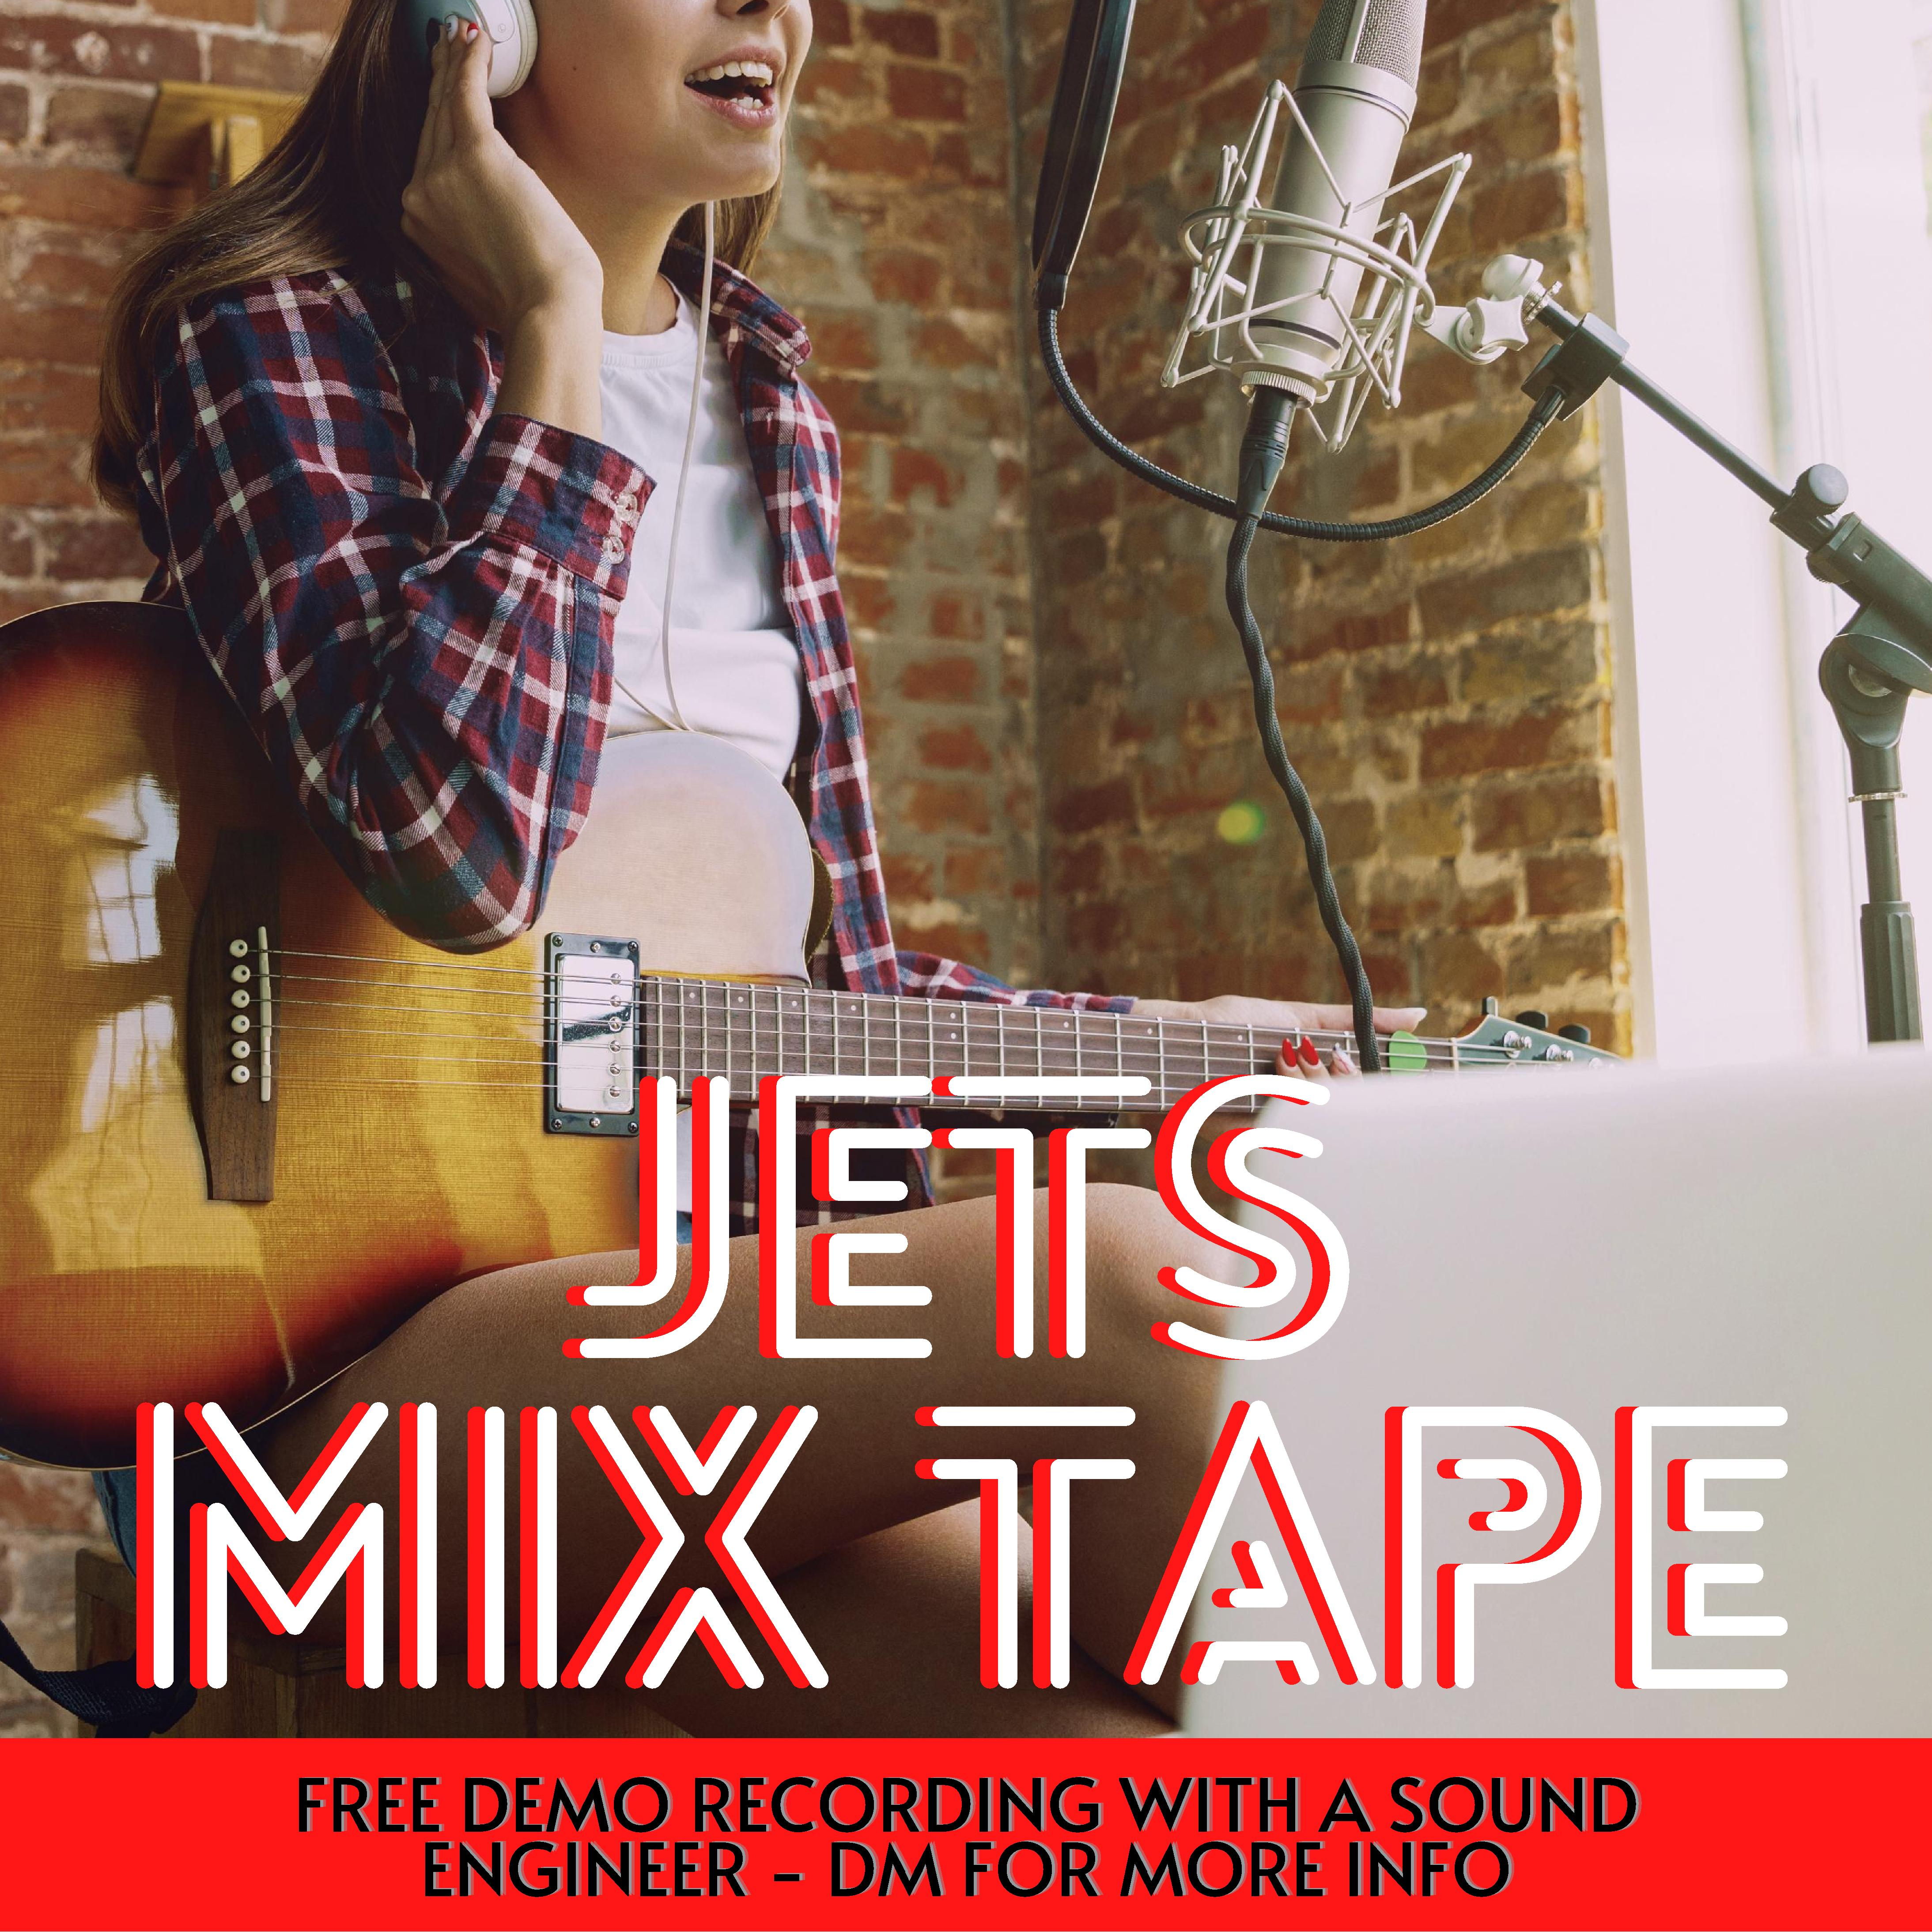 Jets Mix Tape